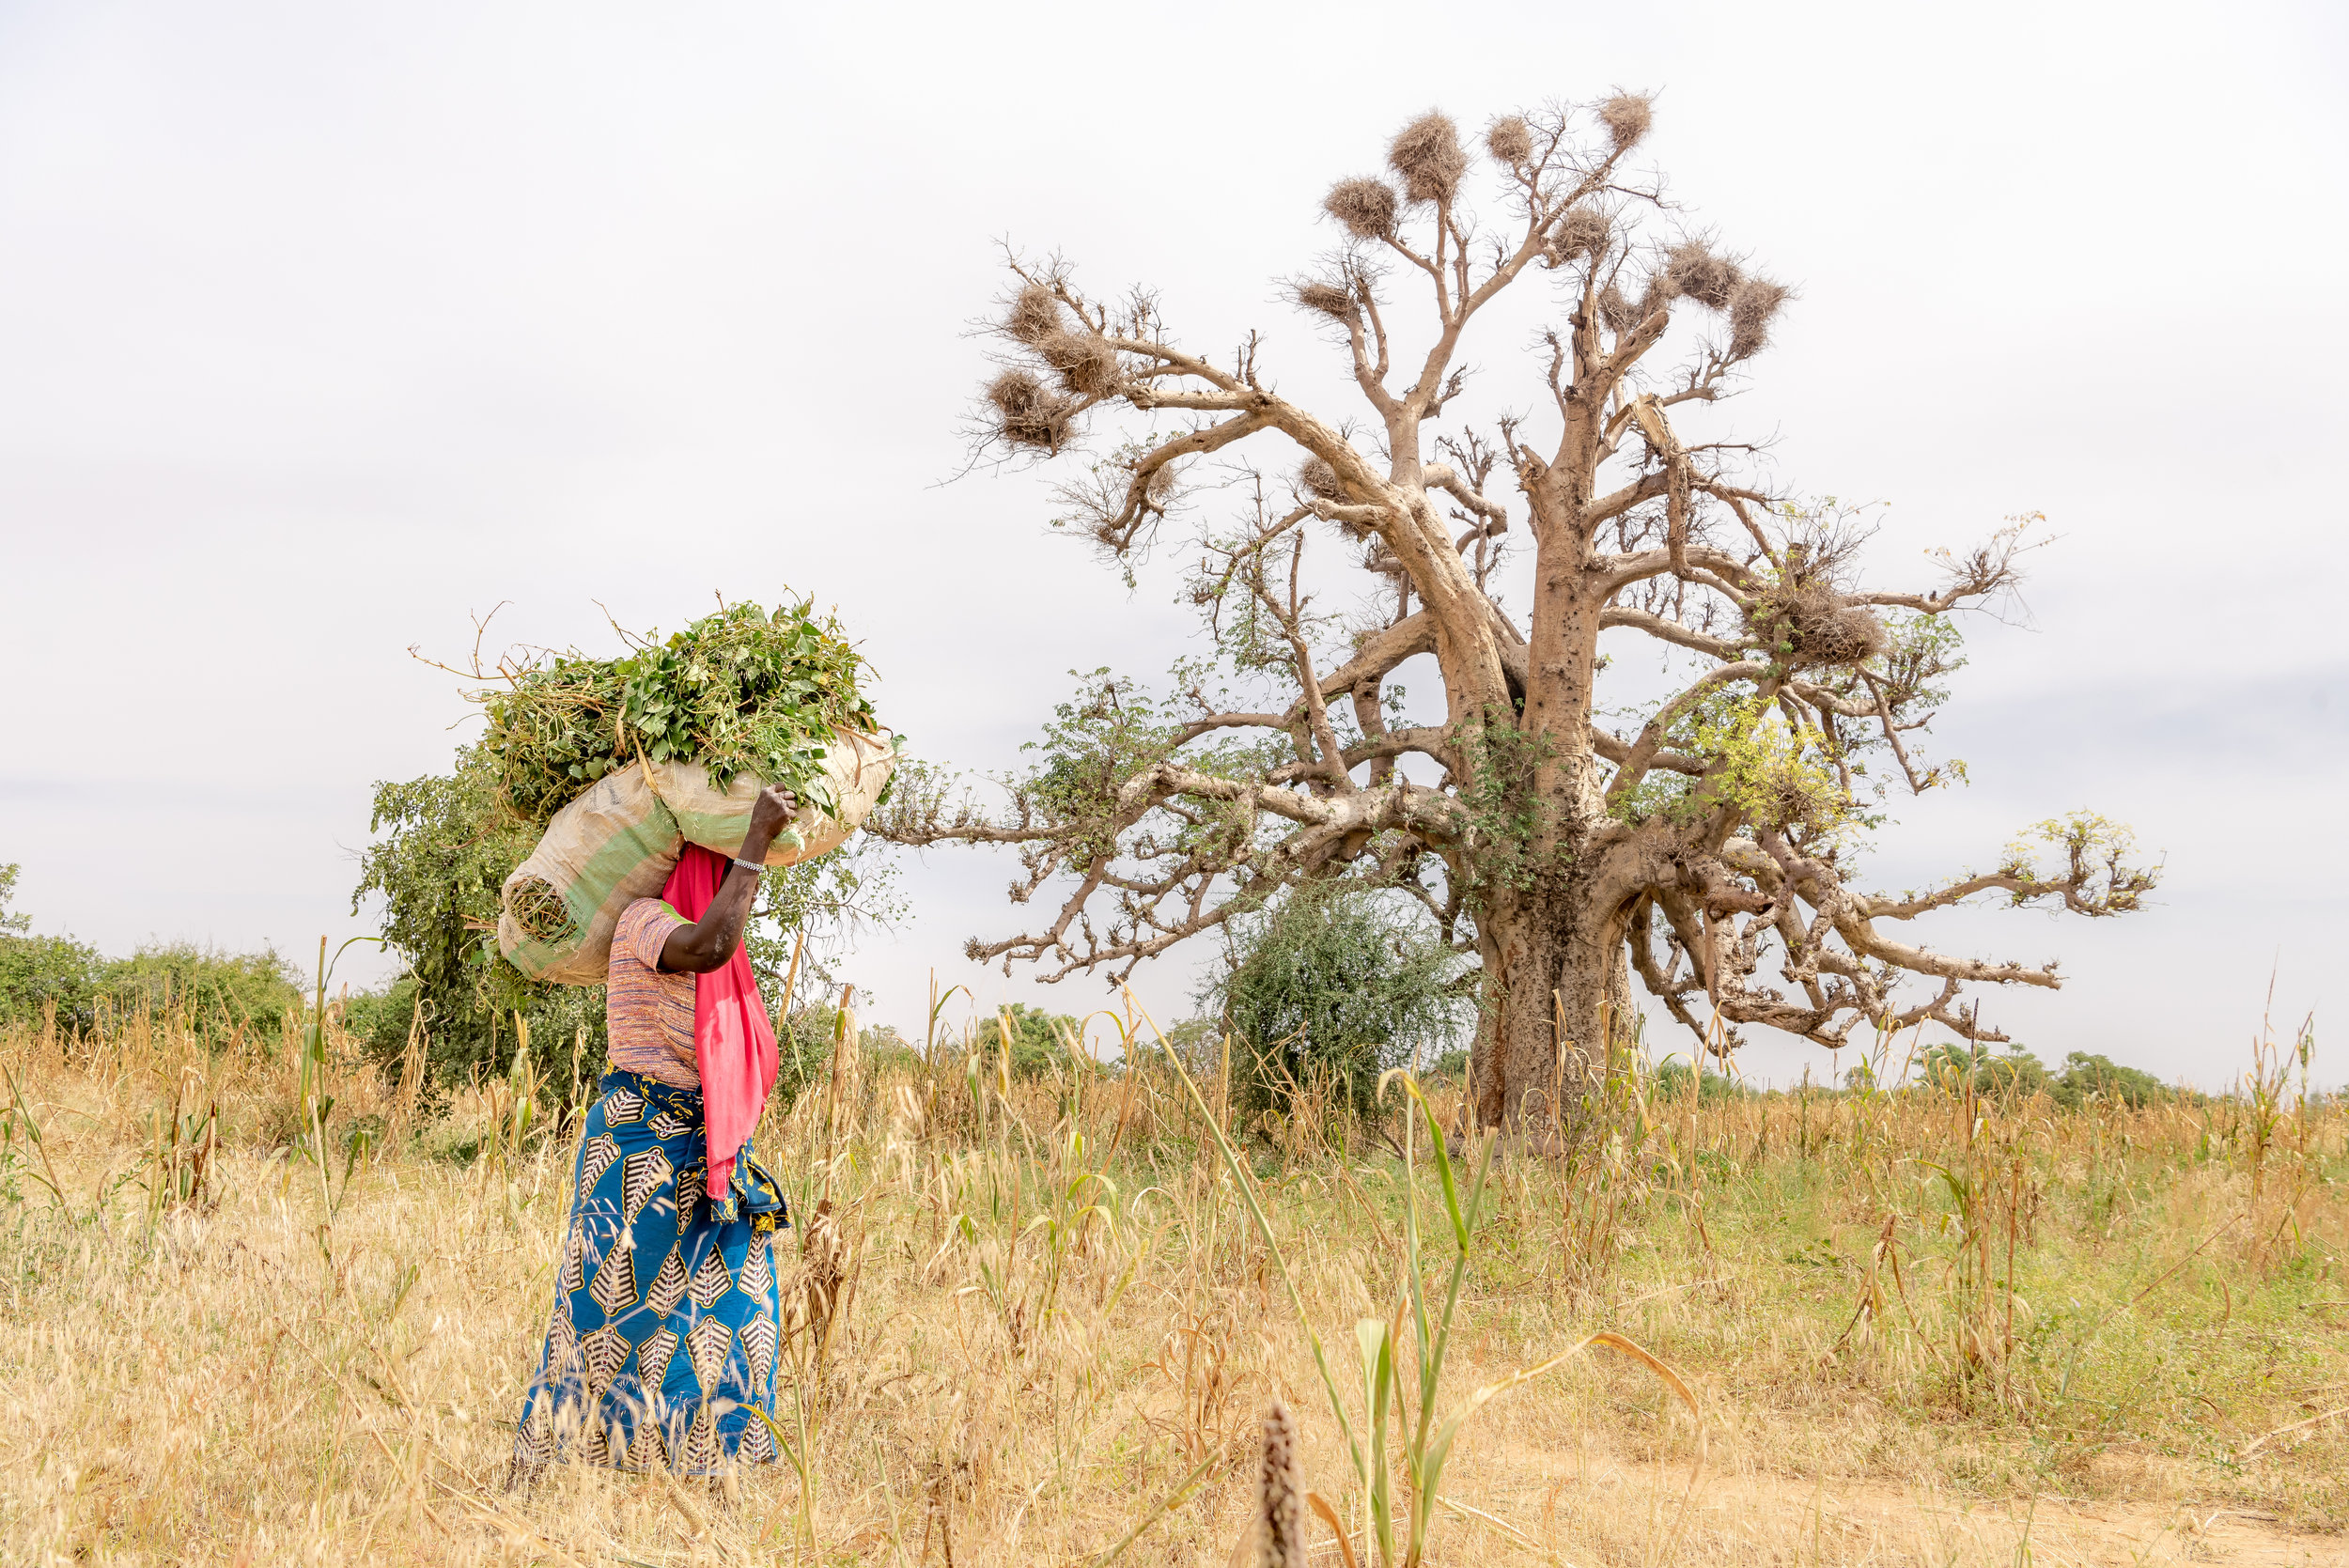 PICTURED:  Village woman of Niger walking near beautiful ancient lone tree, transporting leaves to her farm. The female populations of sub-Saharan Africa are the most at risk of any on earth for excess BMI.